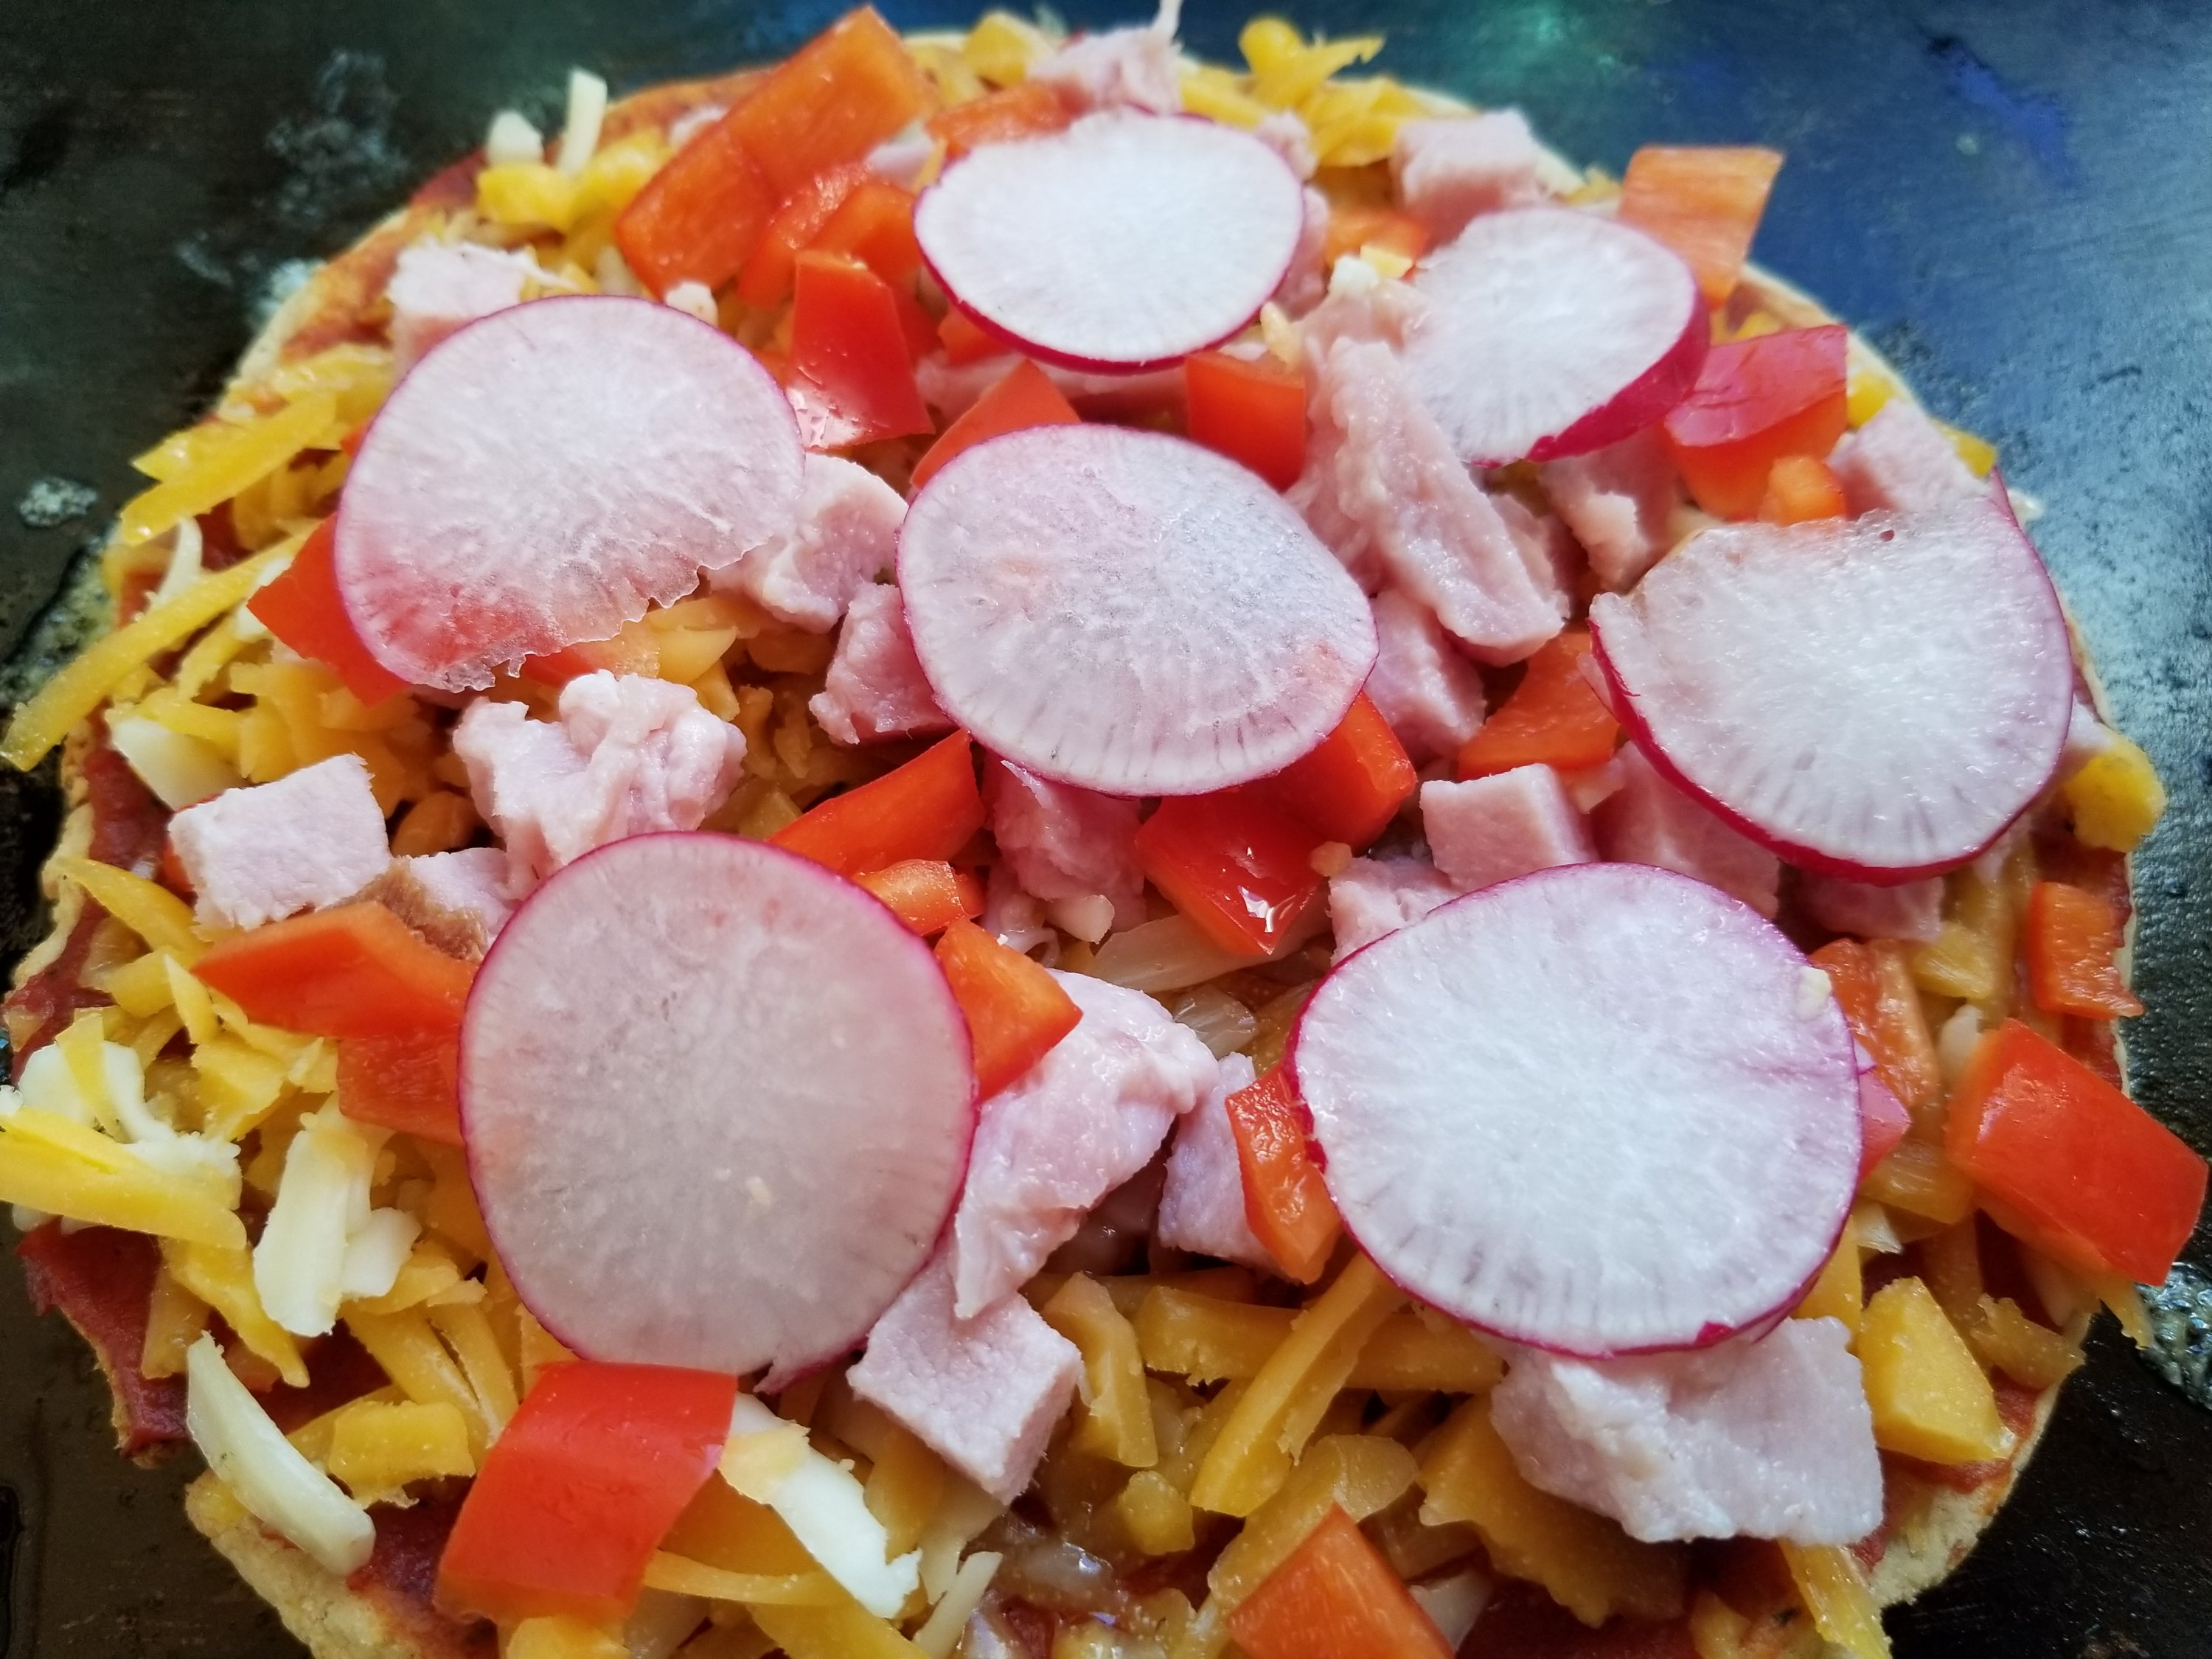 Cheese, ham, red peppers, and radishes